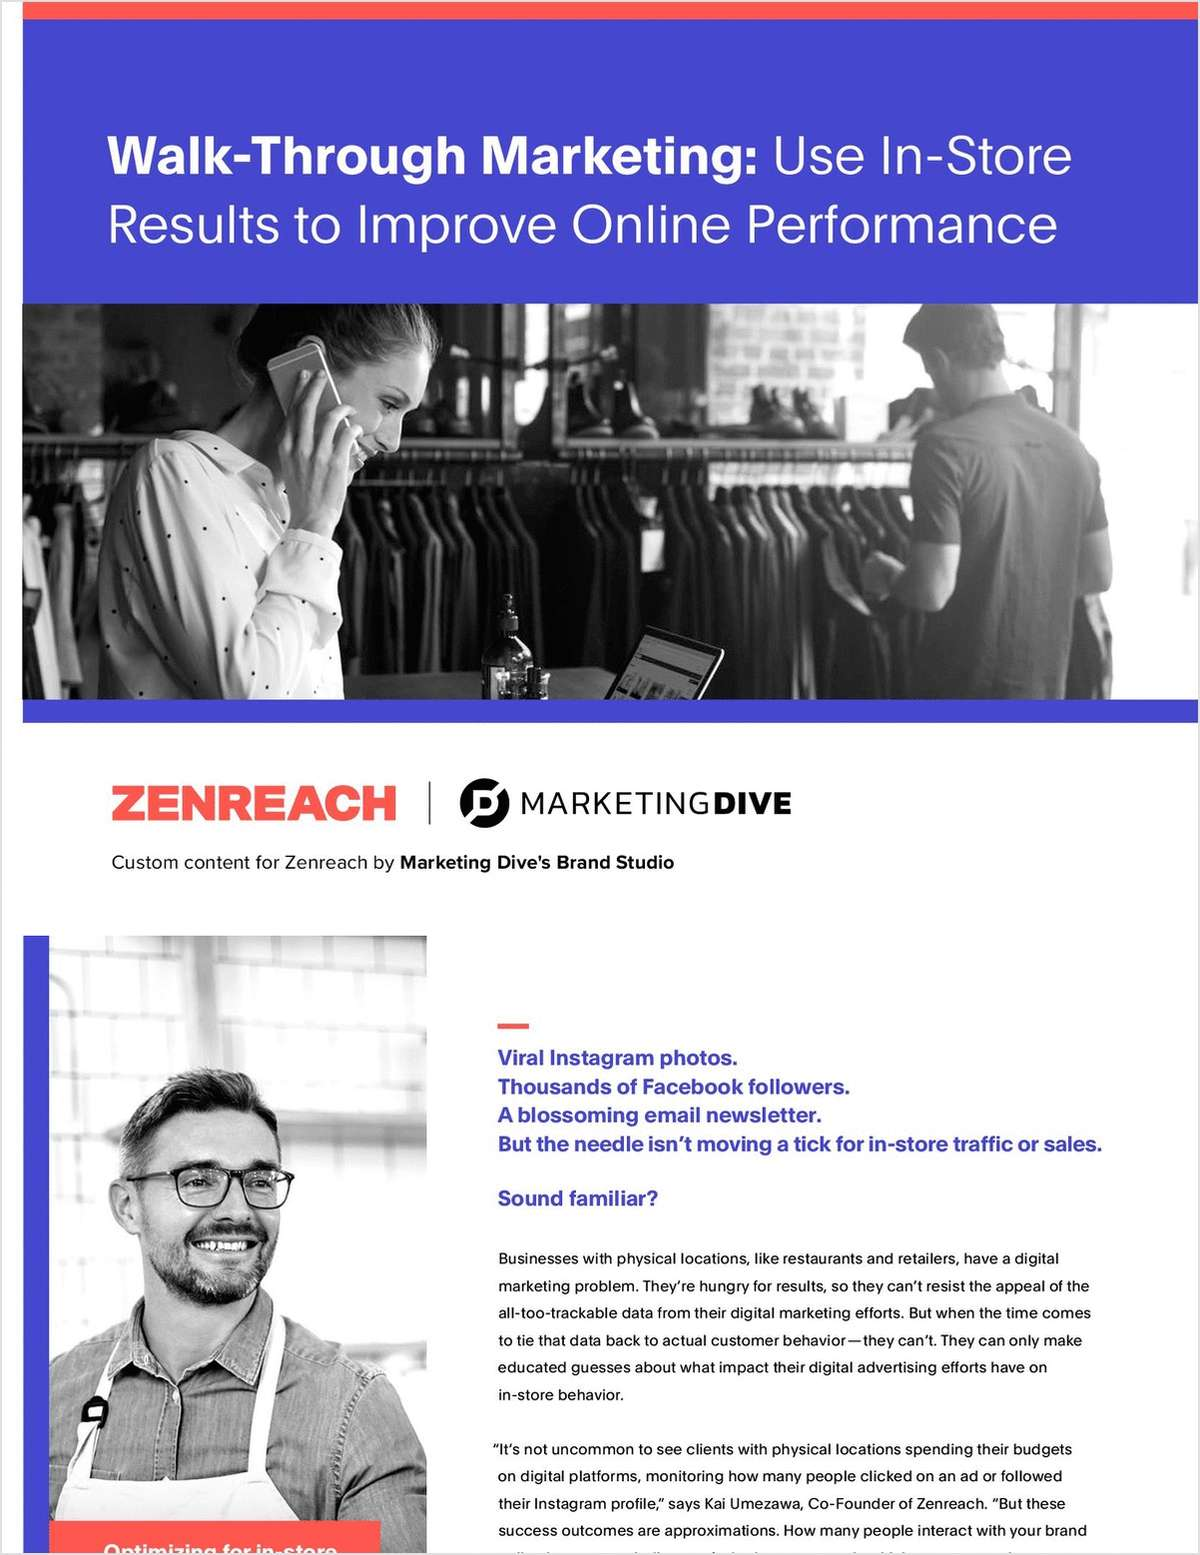 Walk-Through Marketing: Use In-Store Results to Improve Online Performance